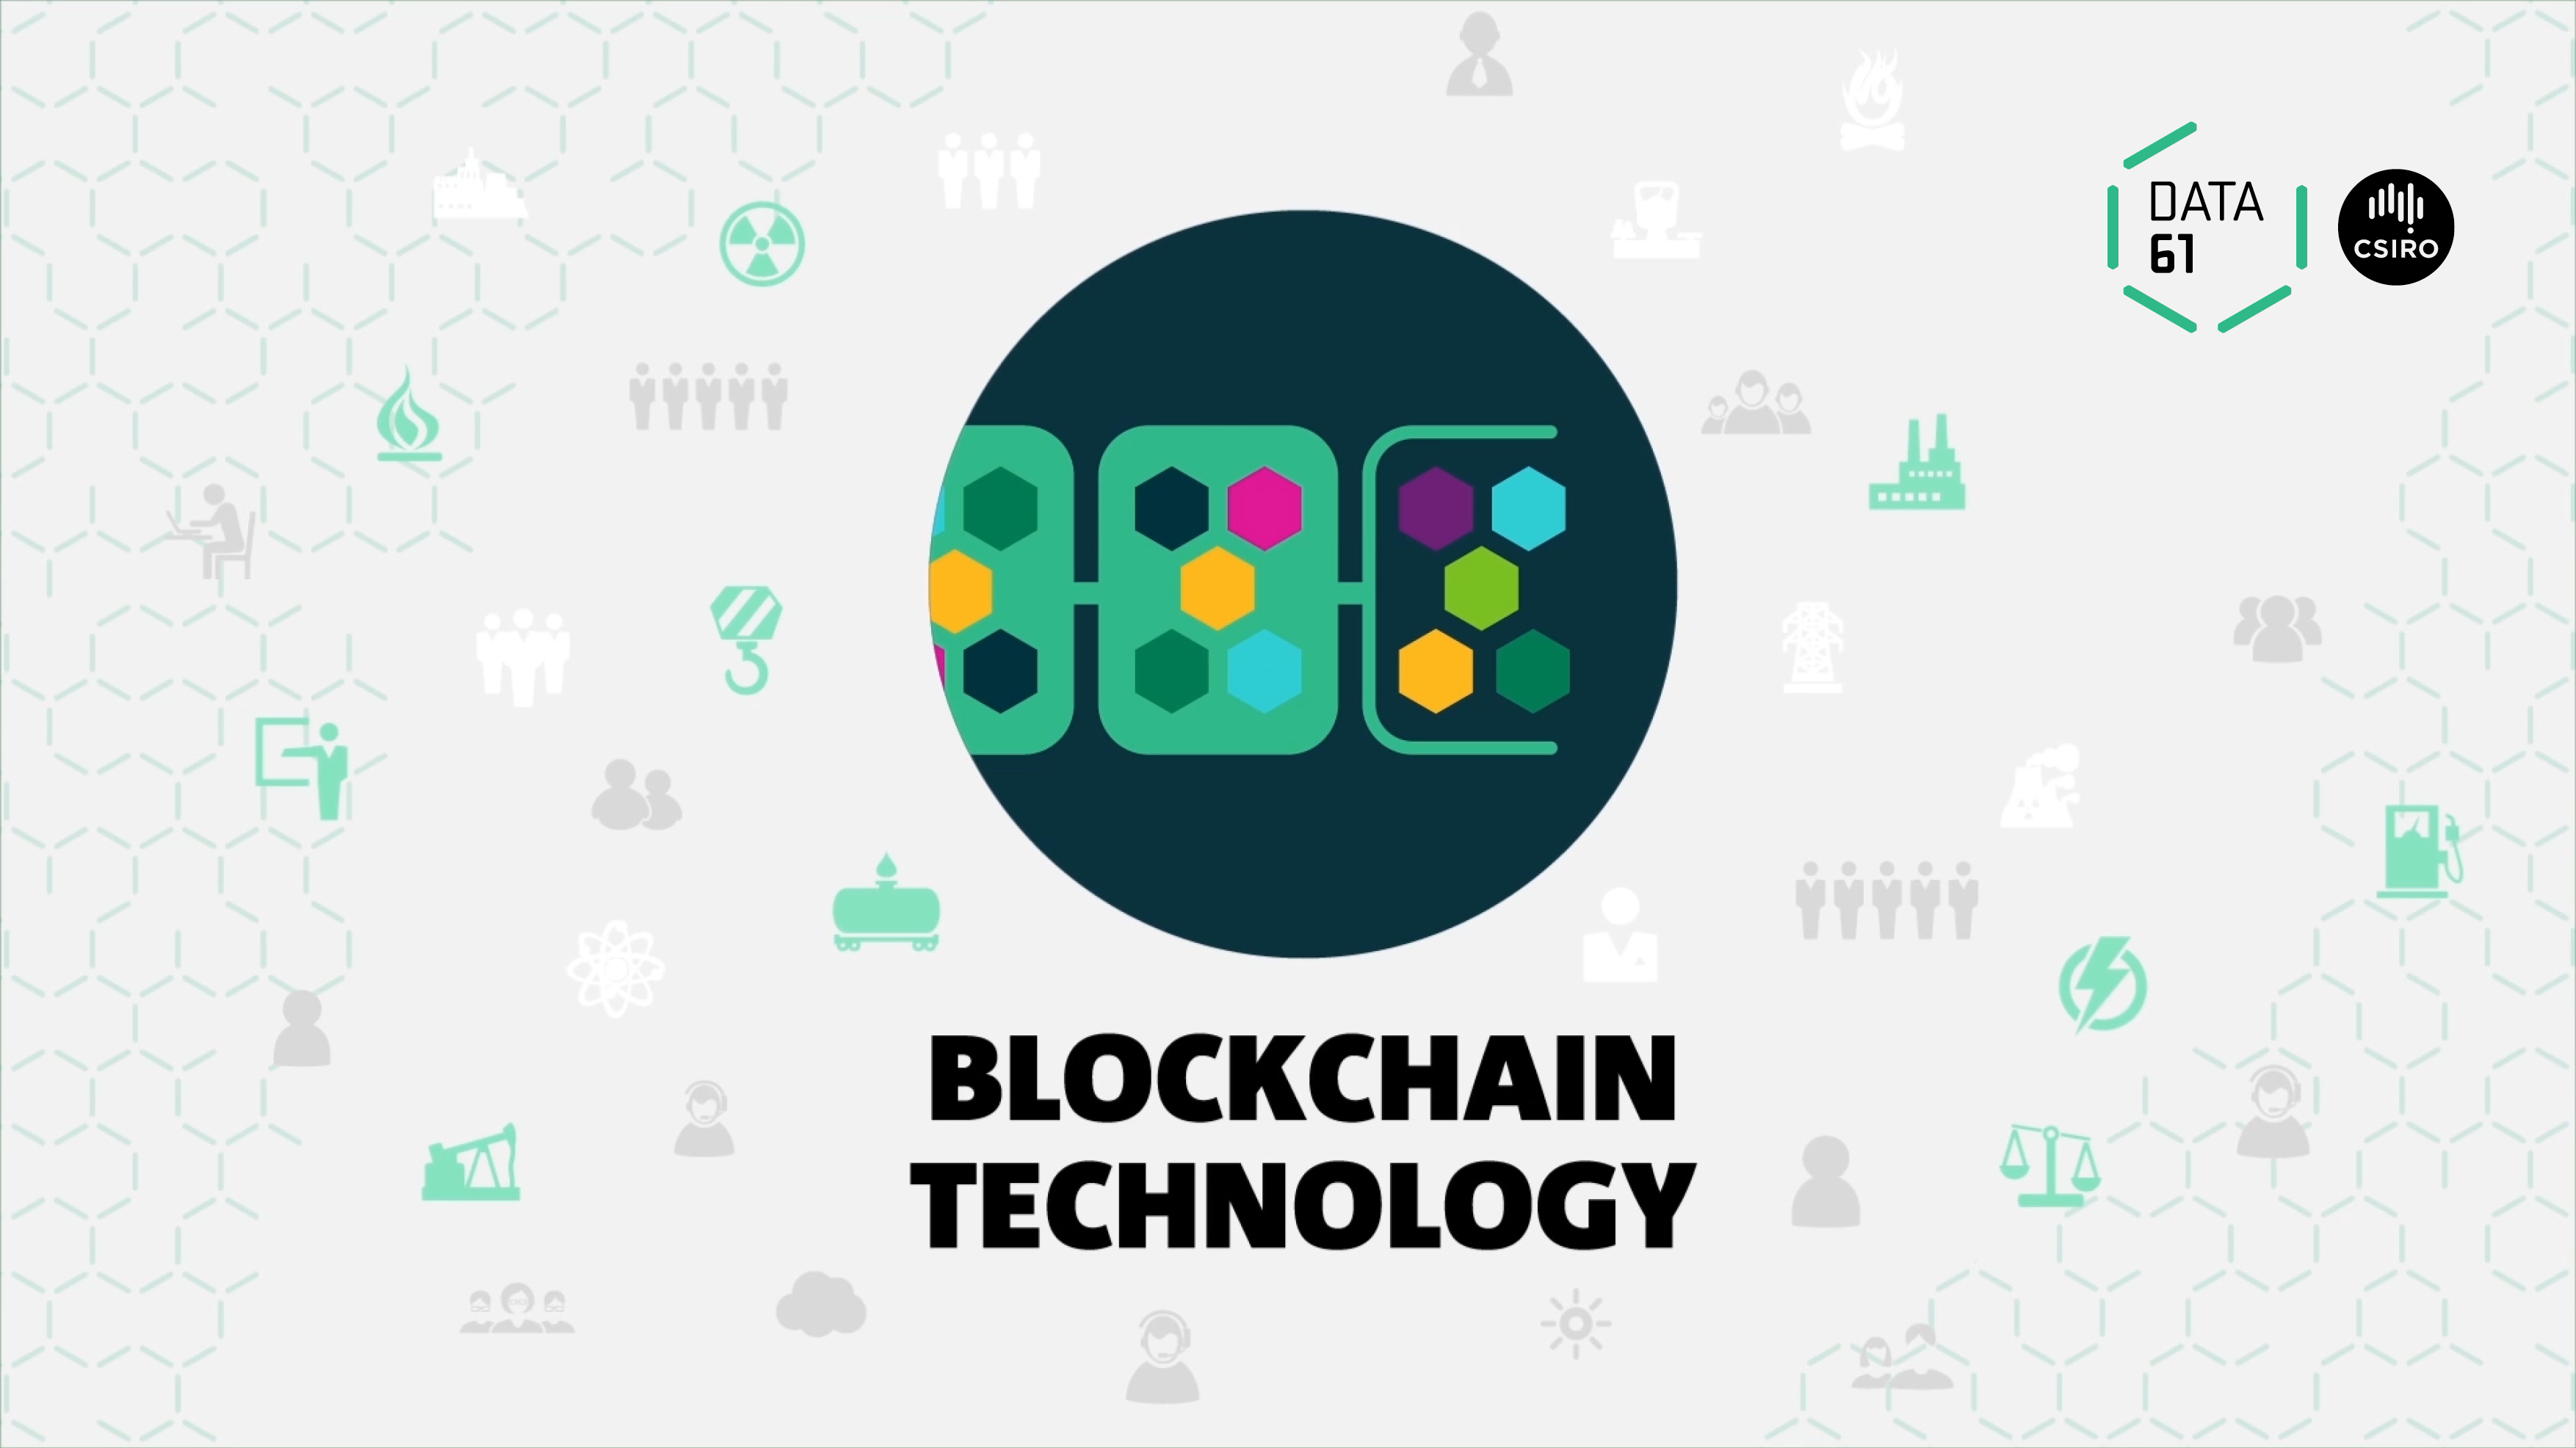 A visual representation of the blockchain using linked shapes